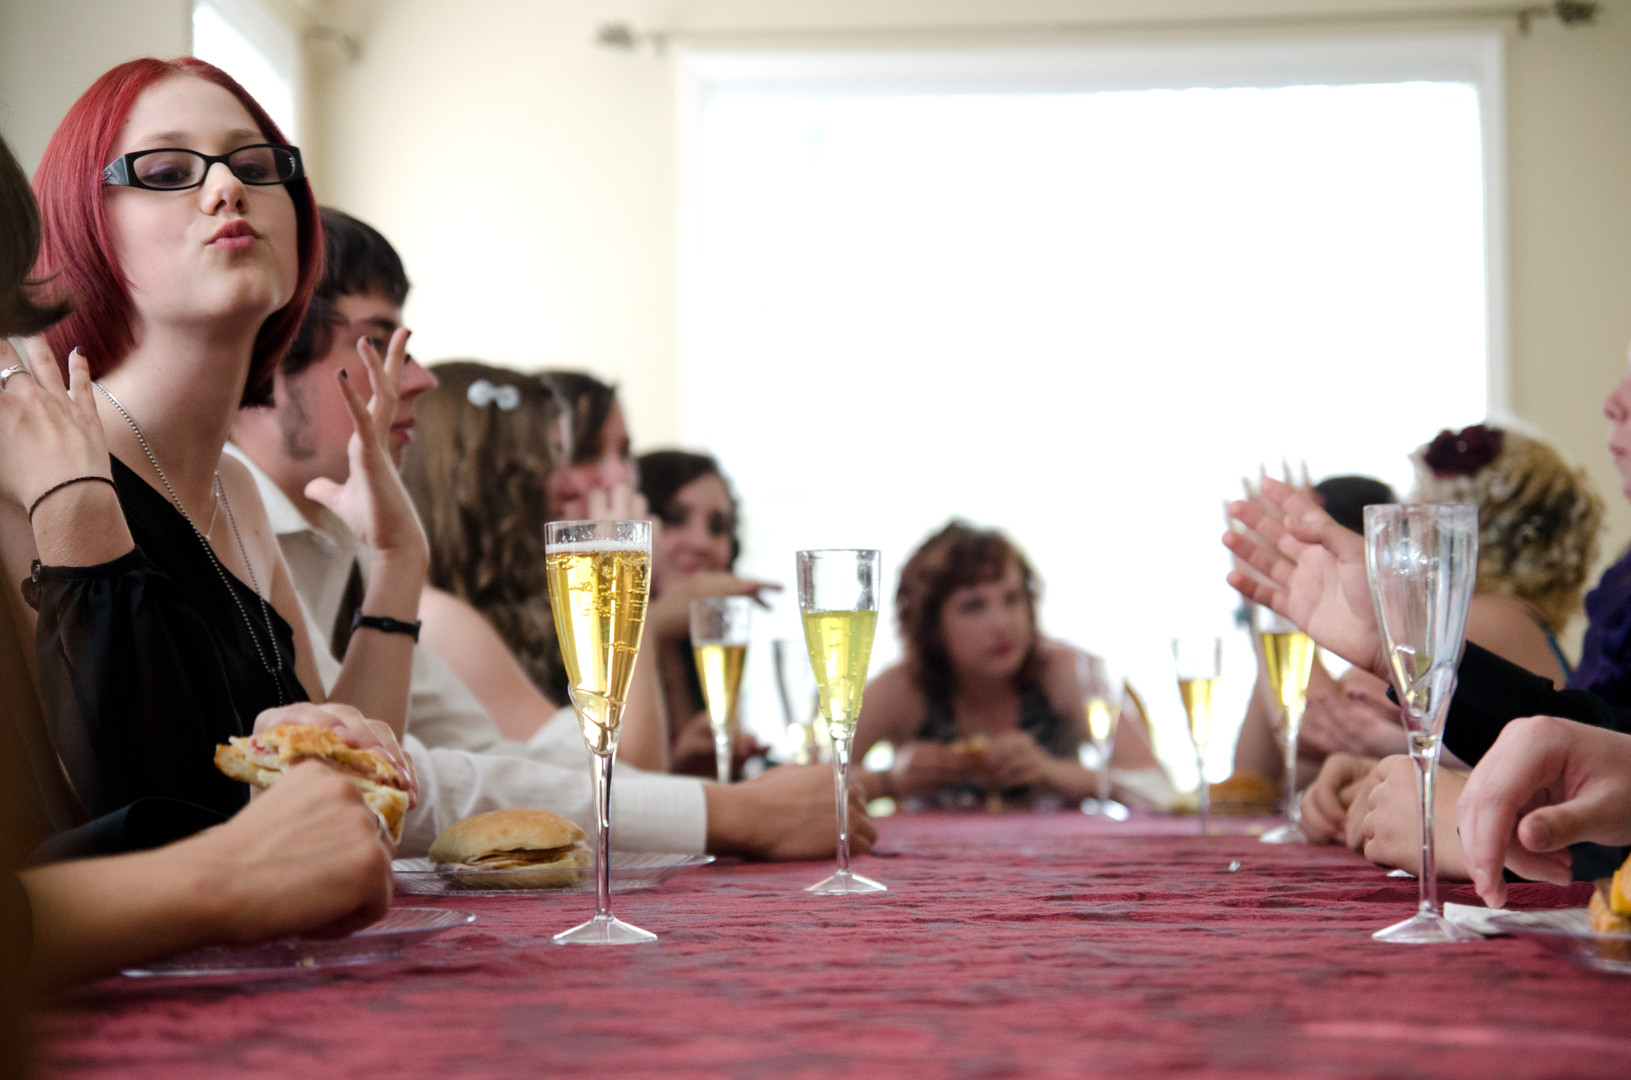 Kendra Burton, a homeschooled sophomore, had dinner with 17 of her other homeschooled friends at her house before the prom on Saturday. Burton and her friends take classes at Village Home, a center that organizes field trips and classes for homeschooled students in Beaverton, Oregon. (The Oregonian)